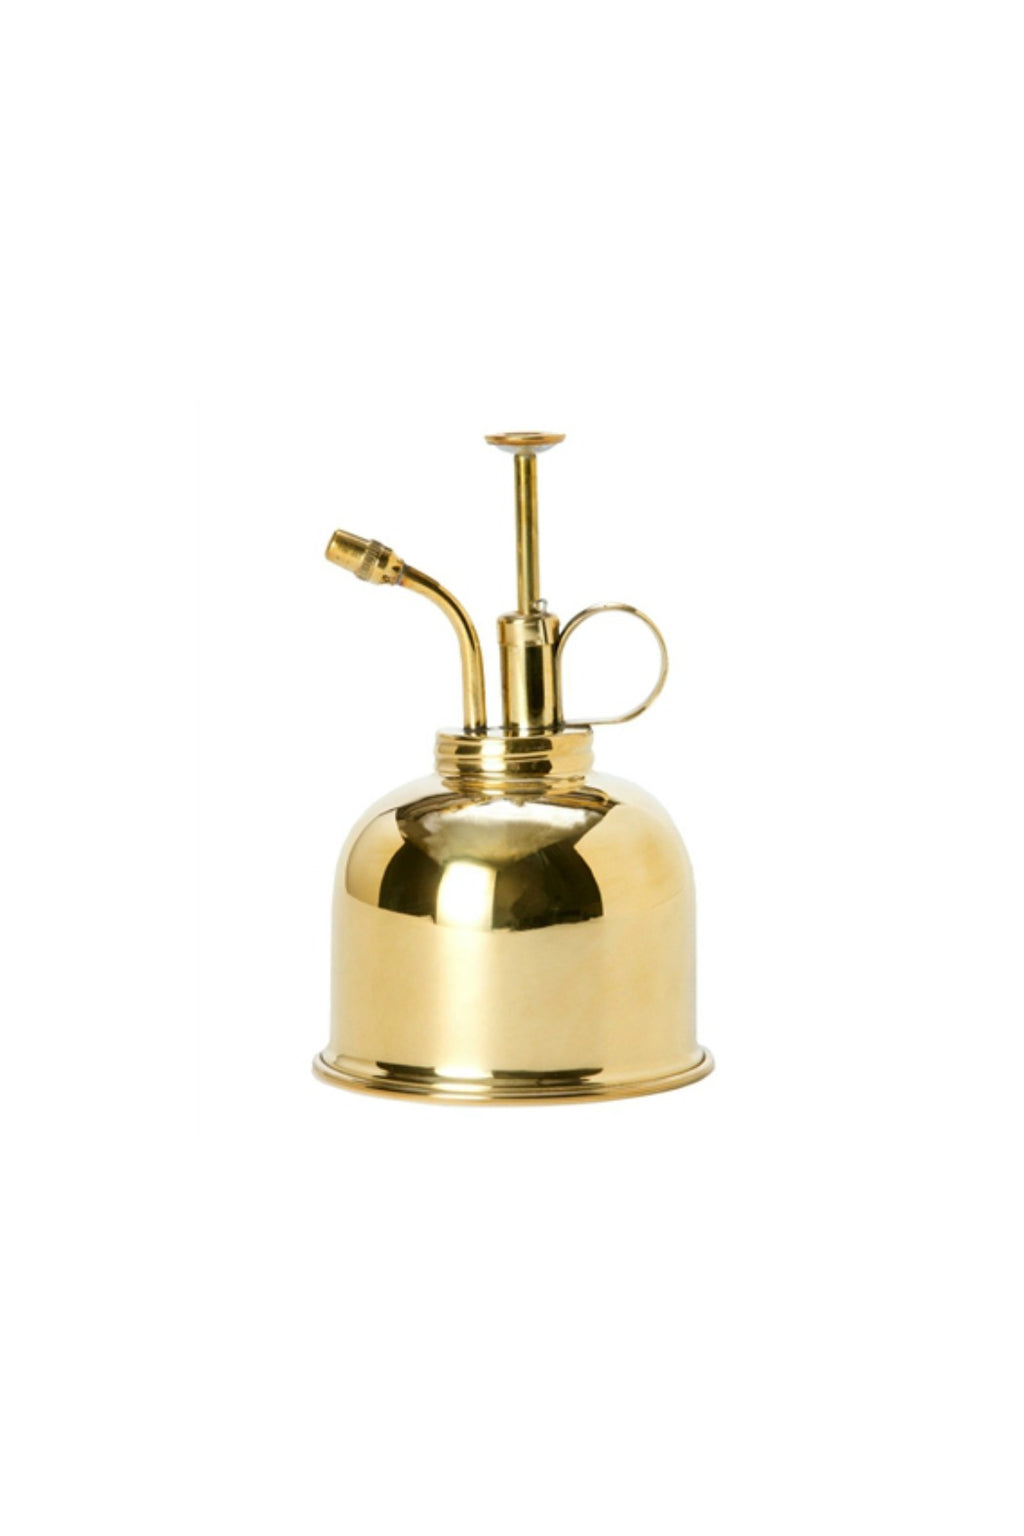 Terrebonne Limited Oil Can Mister - Brass